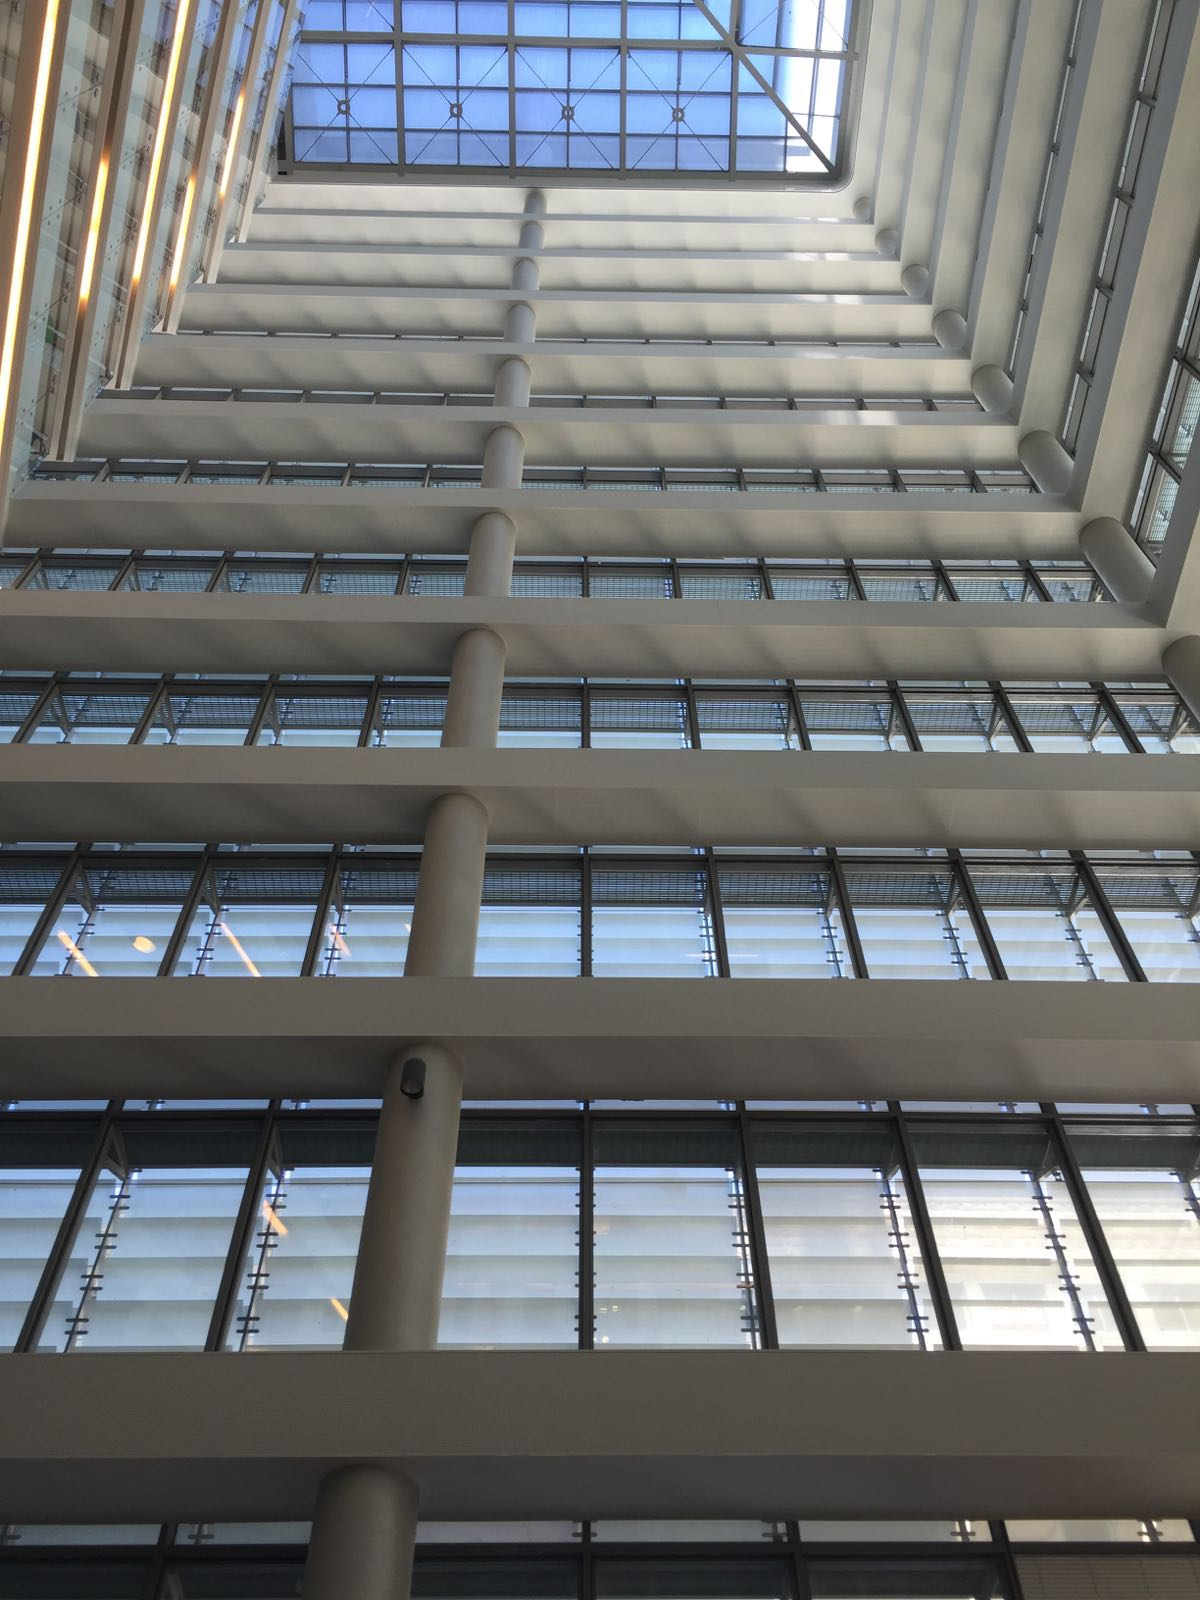 An Insider's Look at the Tel Aviv Stock Exchange